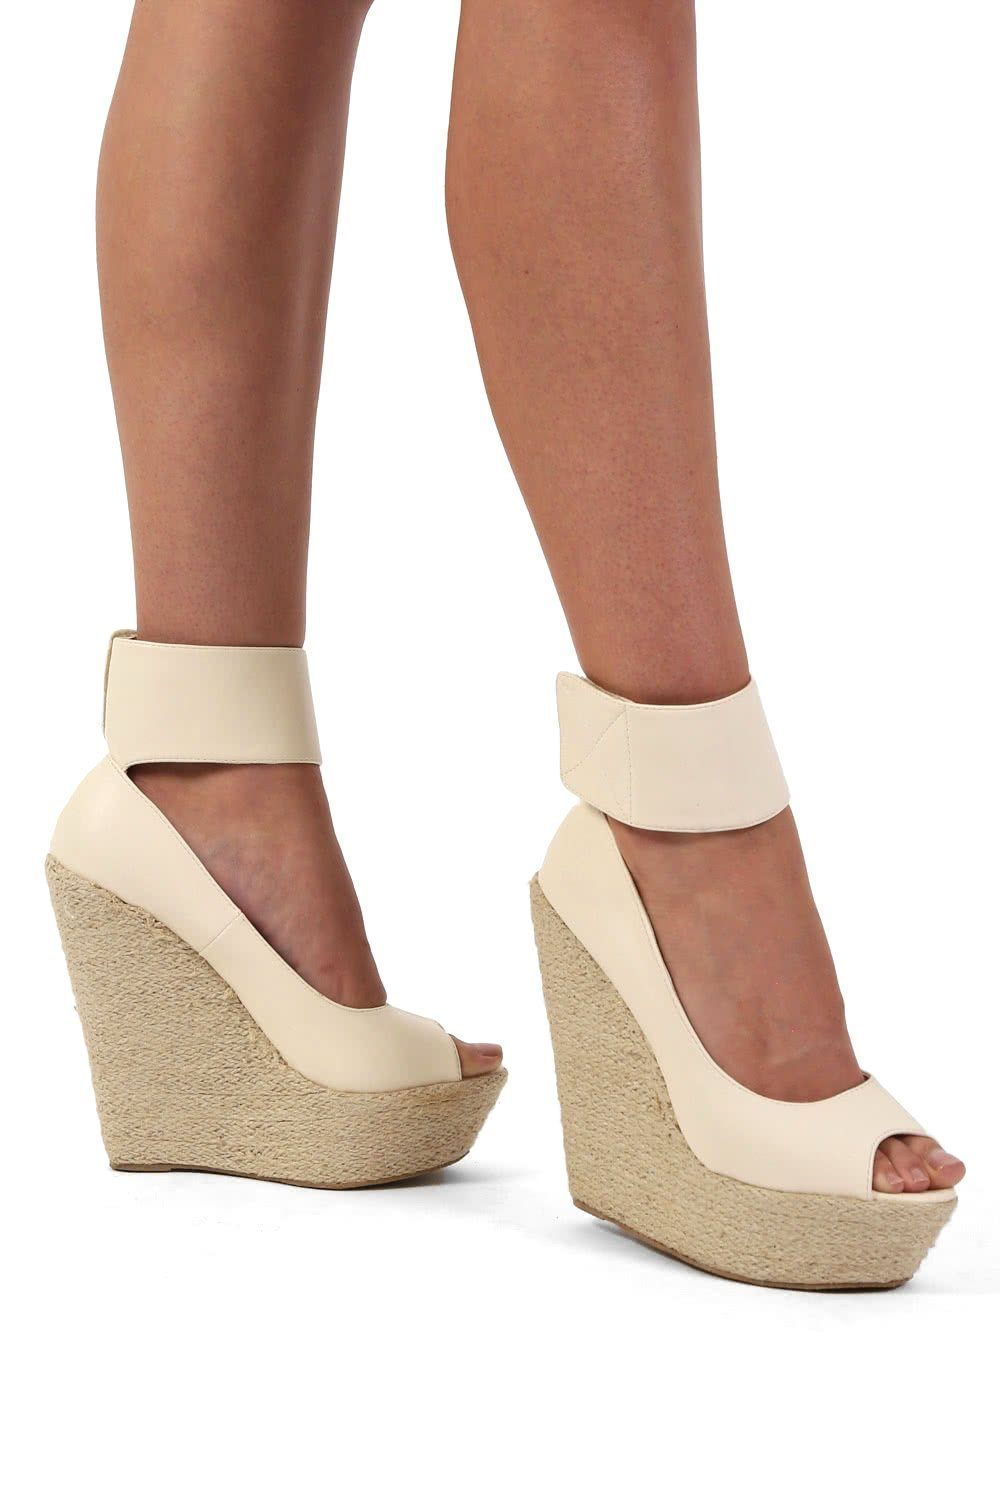 Open Toe Wide Ankle Strap Wedge Sandals in Cream 0